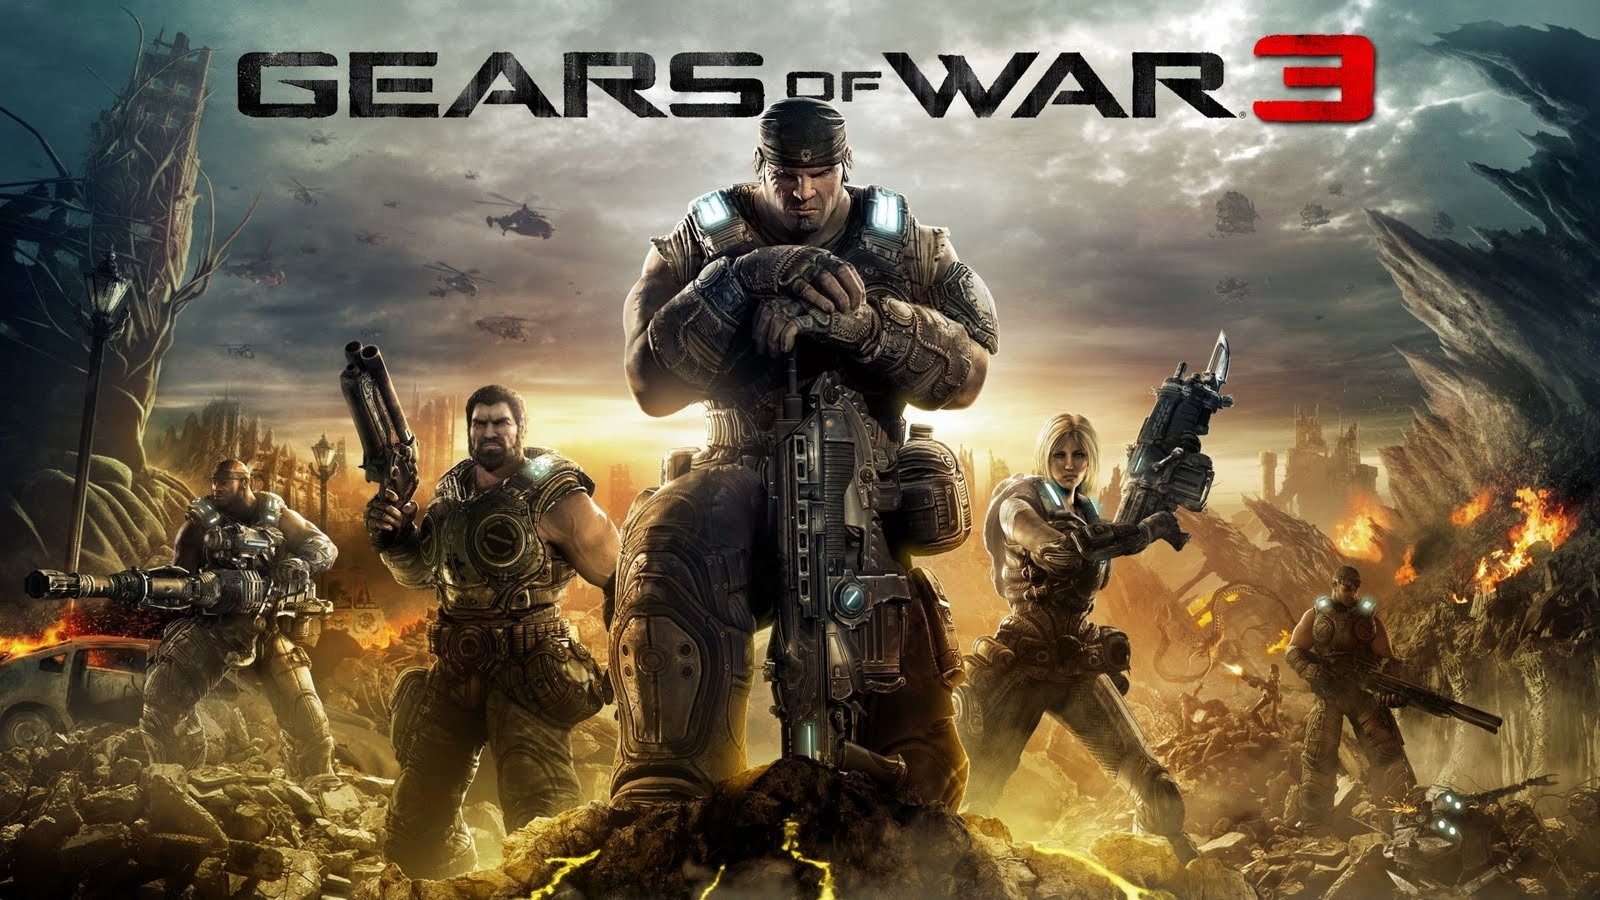 Gears of war 3 wallpaper 5